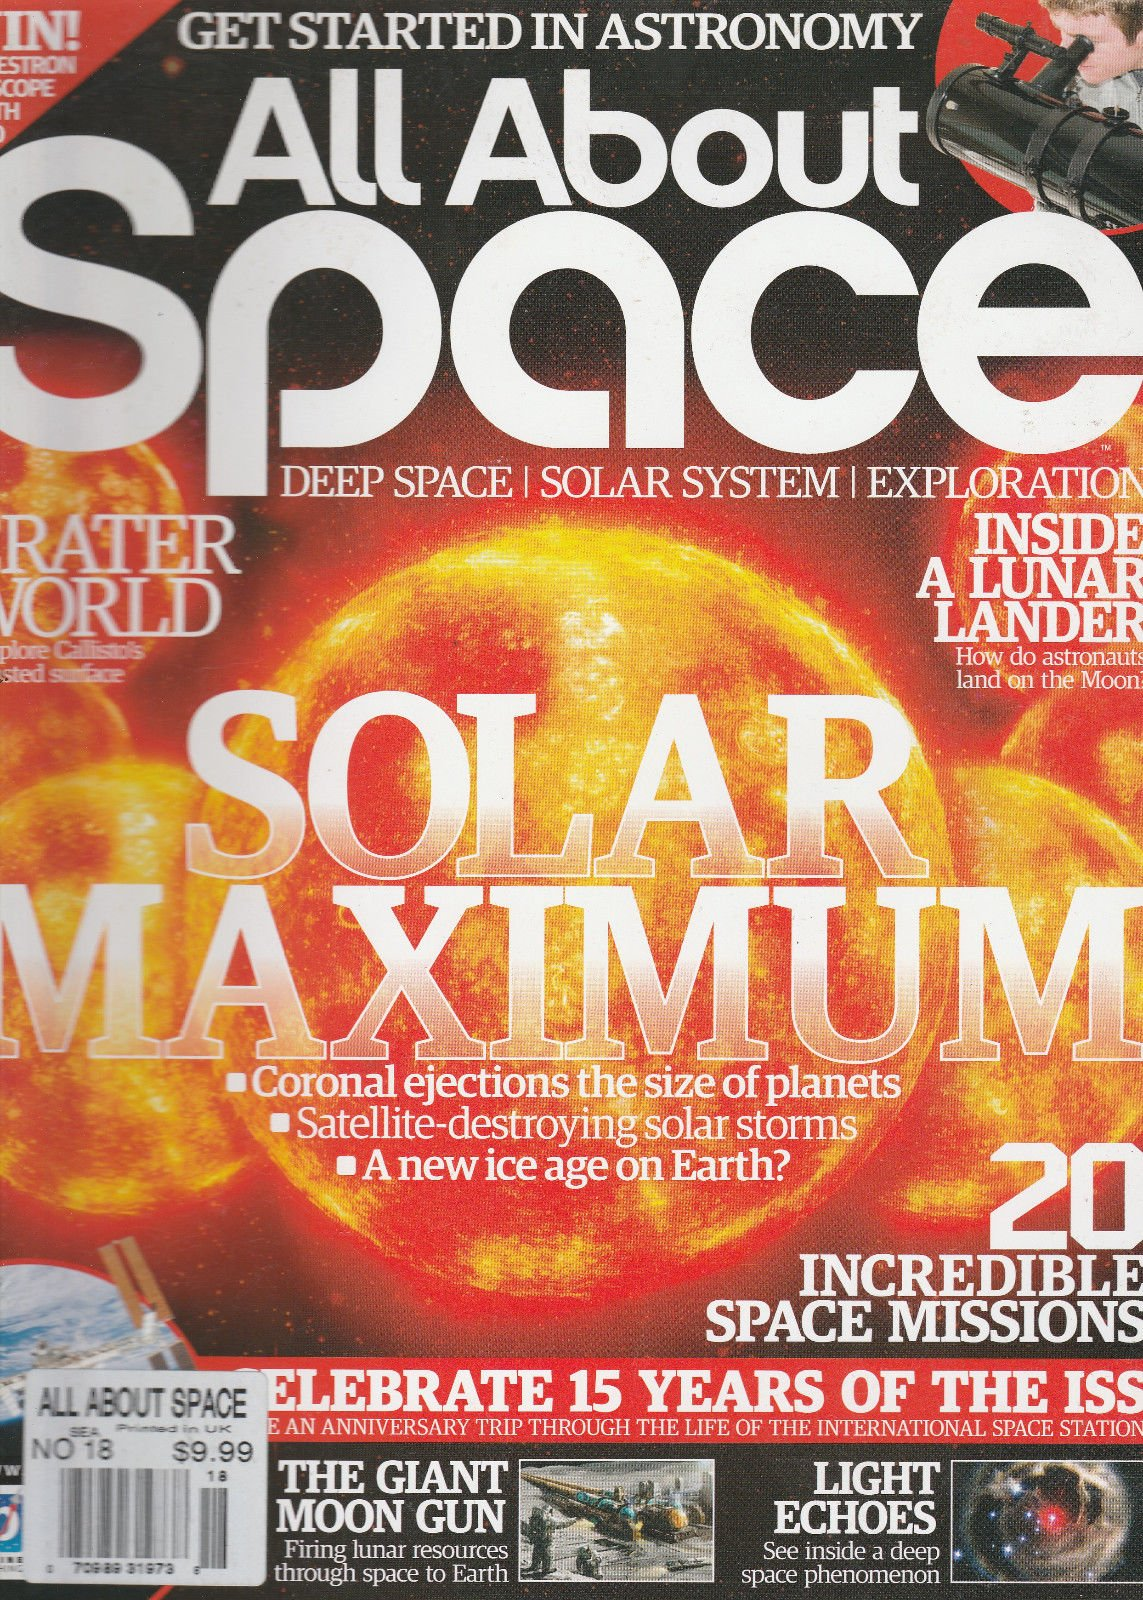 ALL ABOUT SPACE MAGAZINE, NO.18 ( DEEP SPACE SOLAR SYSTEM EXPLORATION